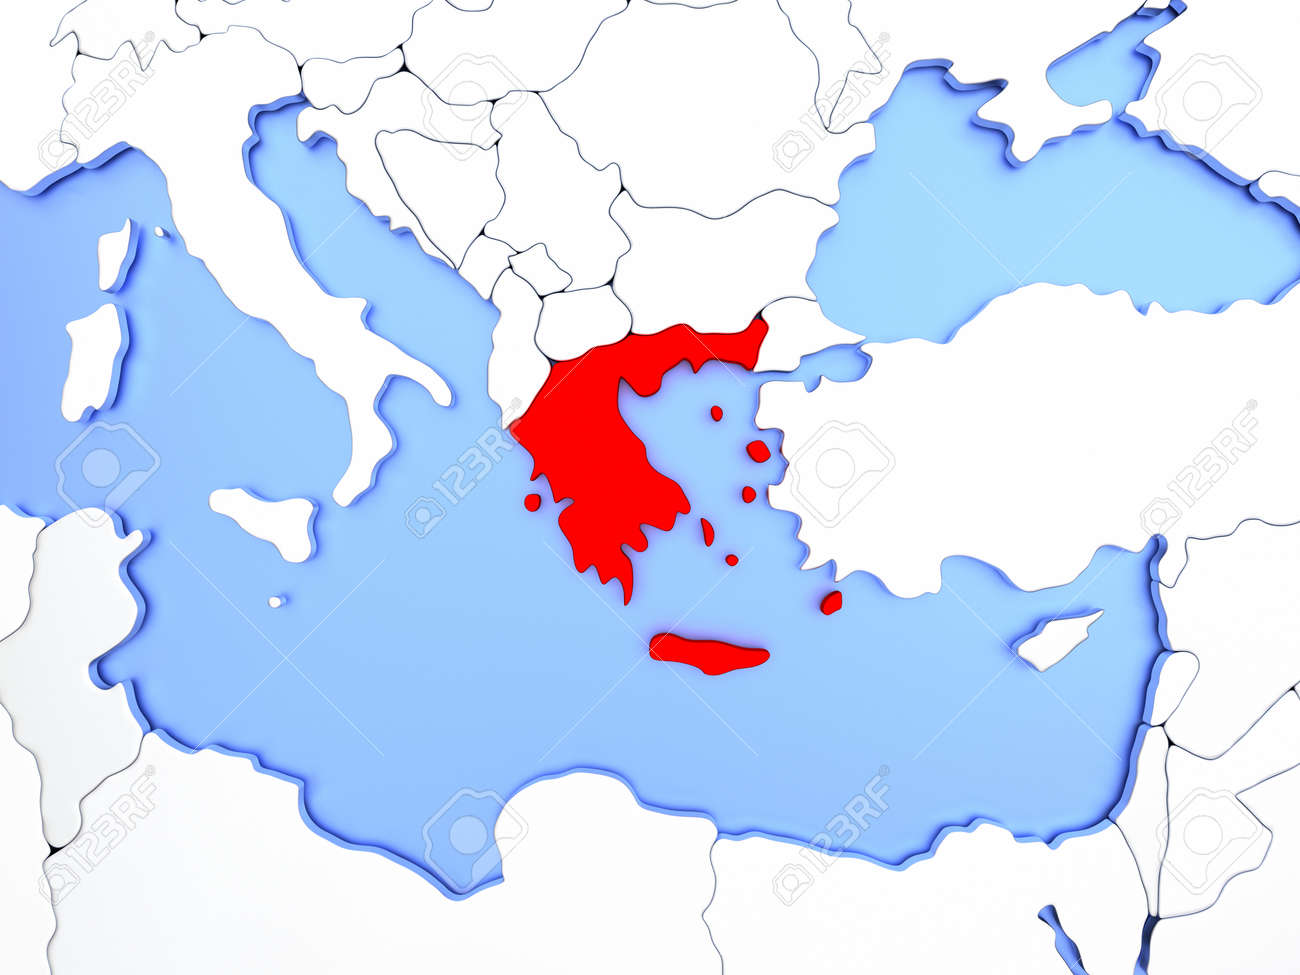 Map of greece highlighted in red on simple shiny metallic map illustration map of greece highlighted in red on simple shiny metallic map with clear country borders 3d illustration gumiabroncs Choice Image